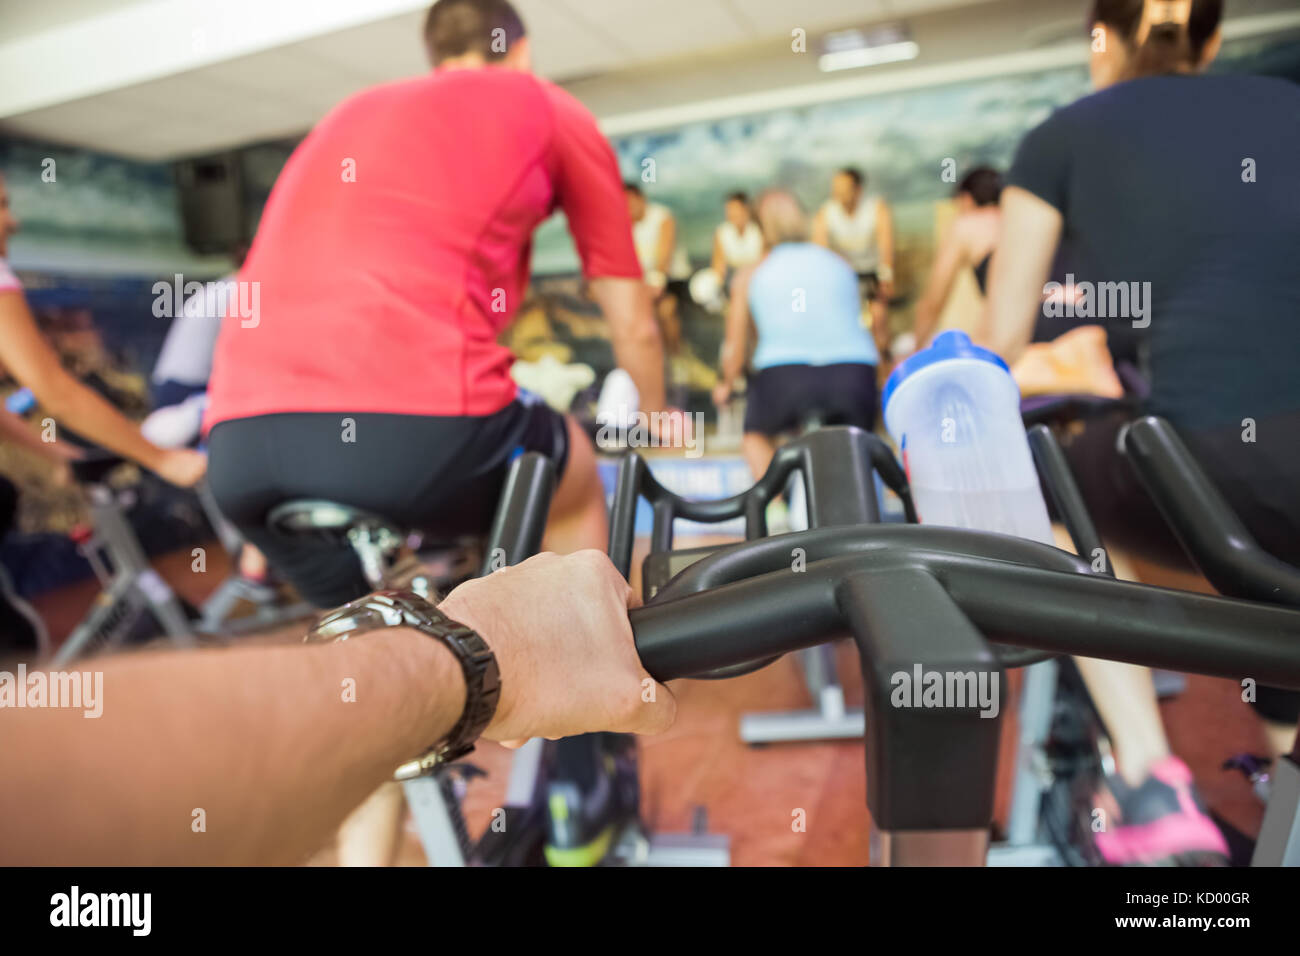 Spinning class sport people exercise at gym - Stock Image